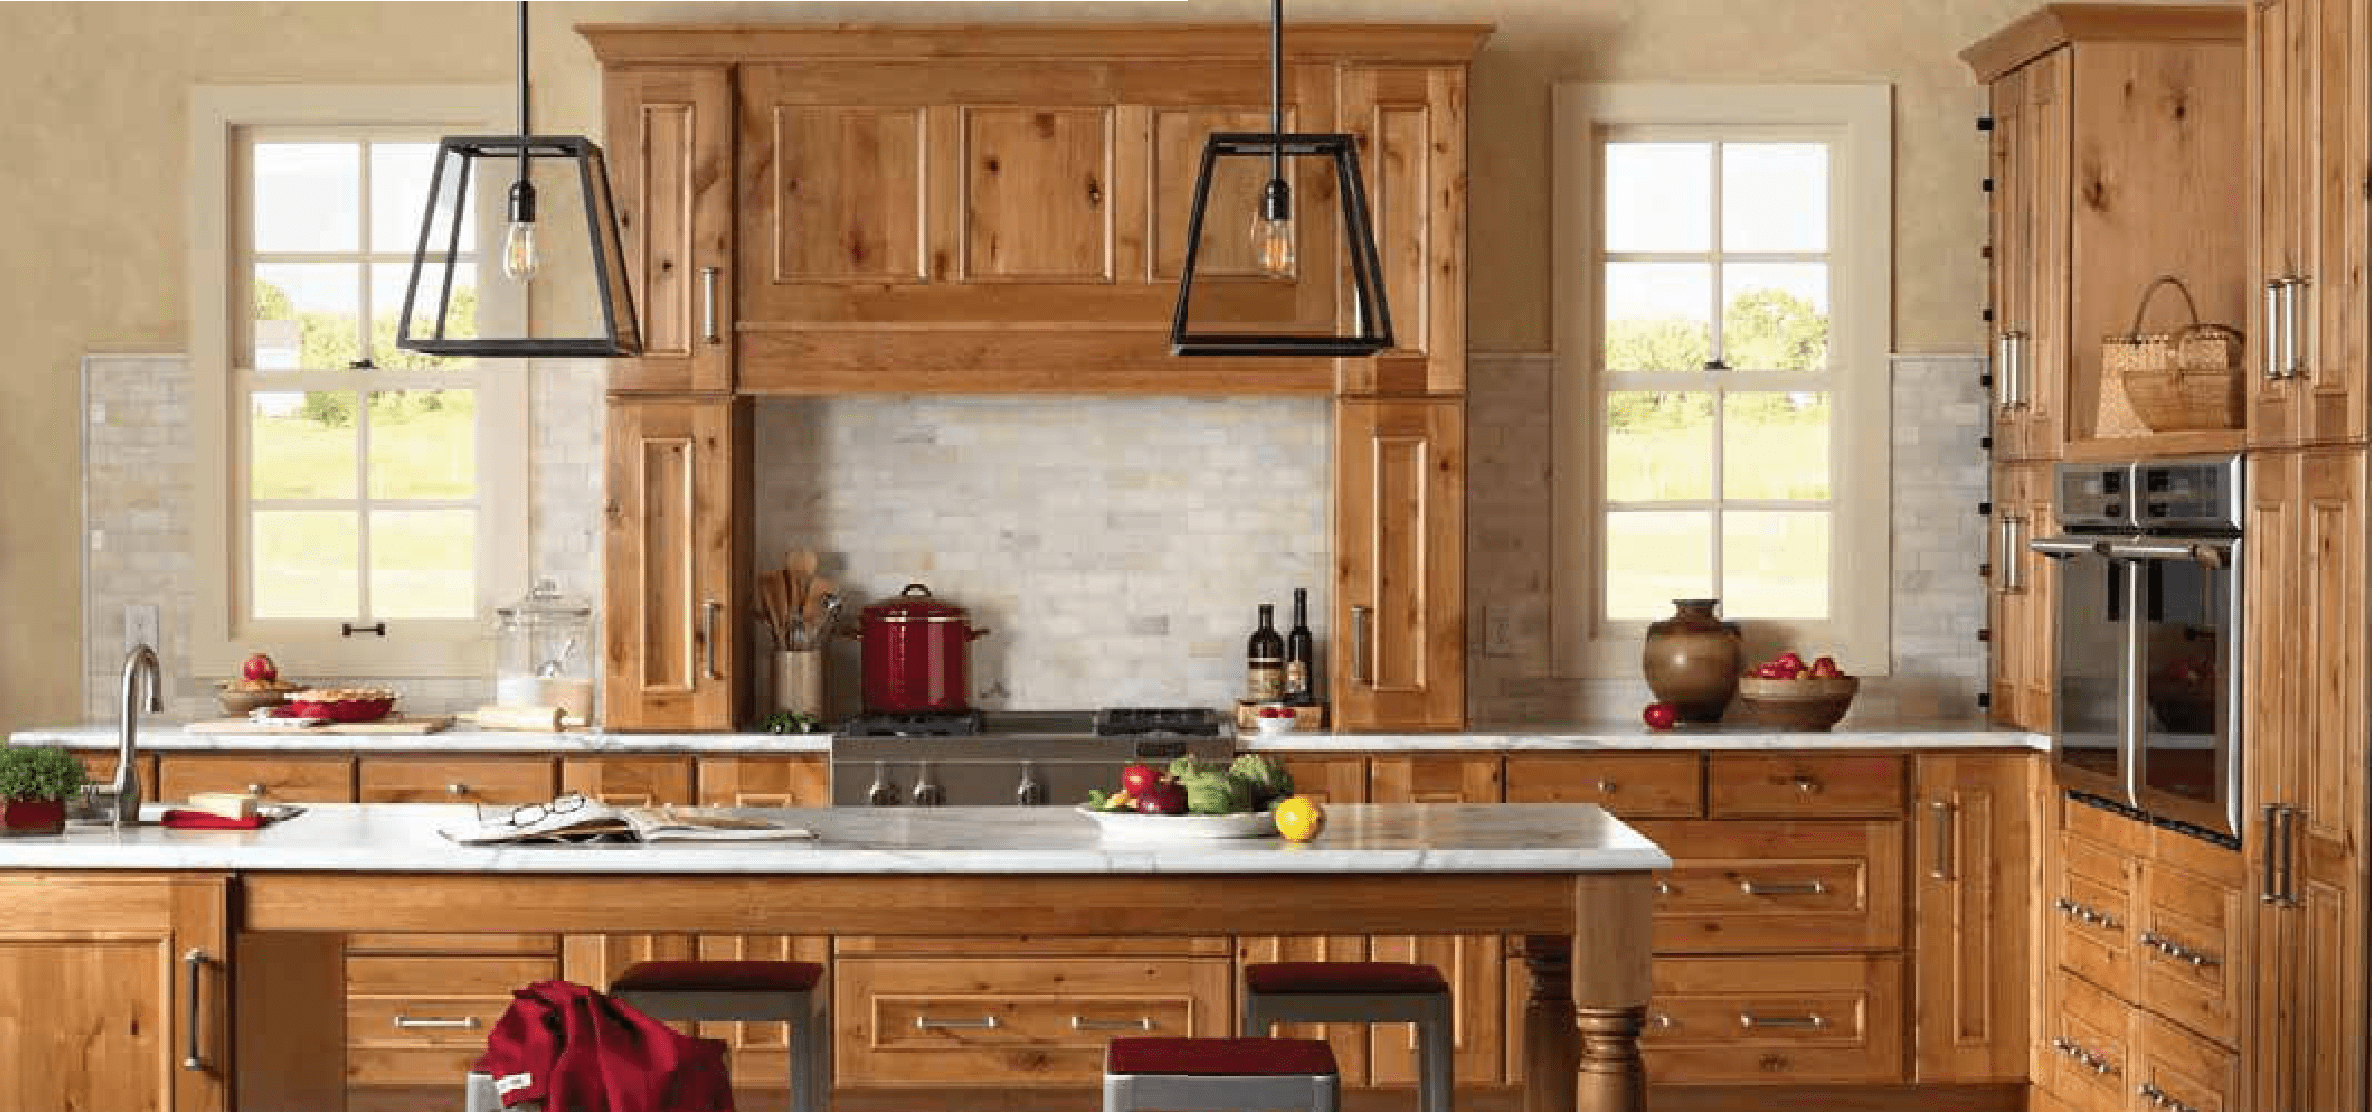 used kitchen cabinets indiana hardware ideas gilbert from norcraft cabinetry rustic alder natural